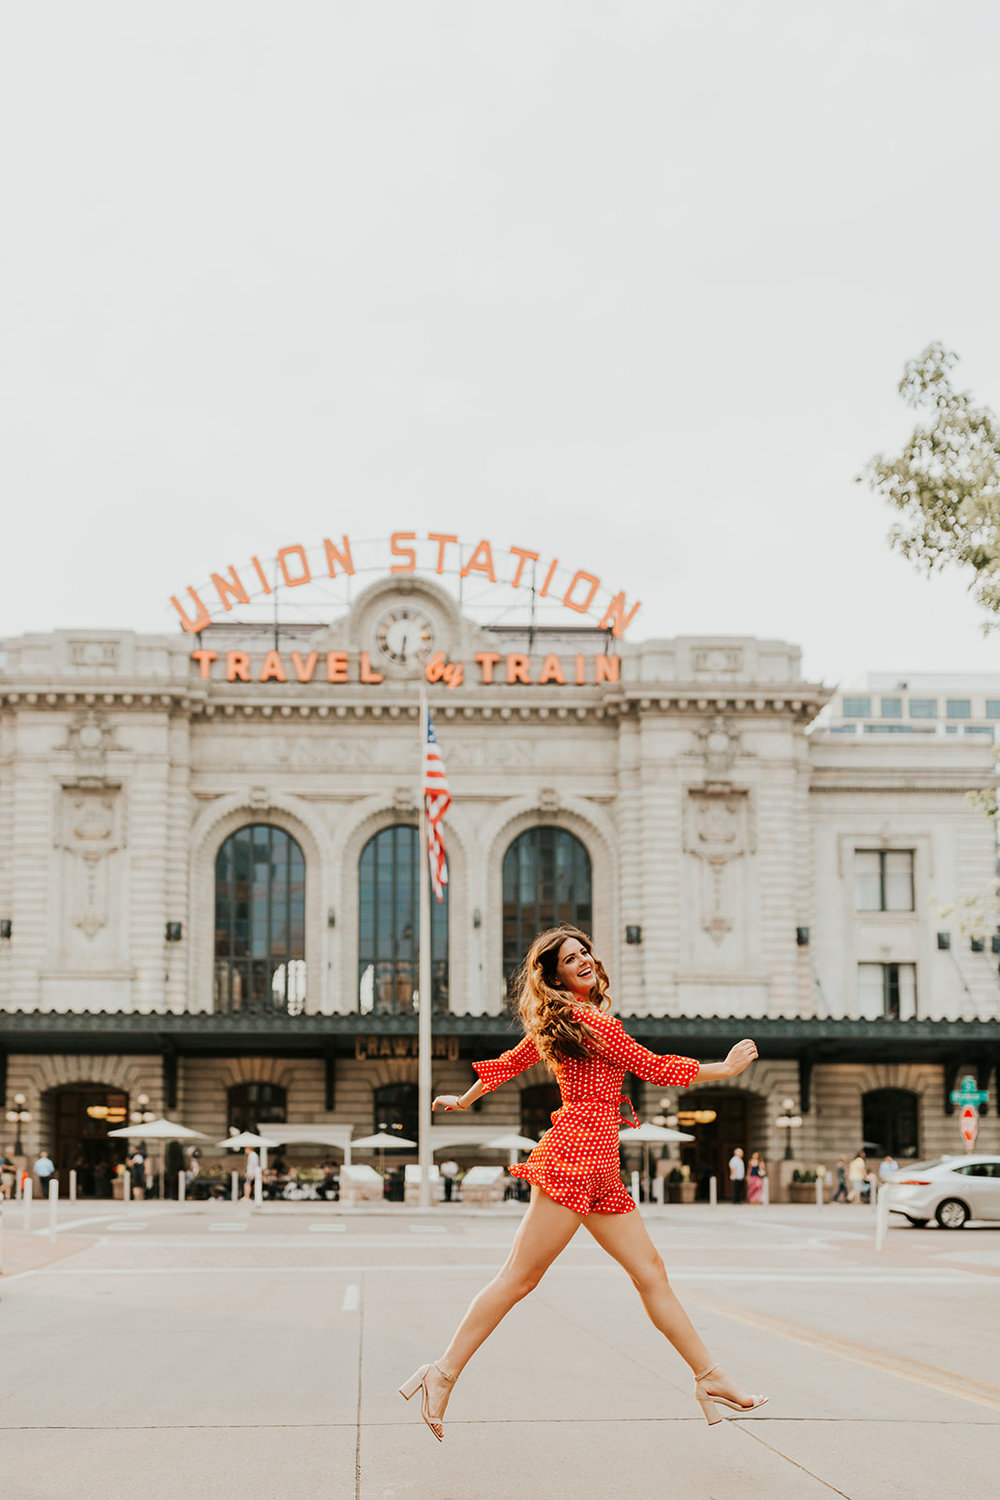 UnionStation_Portraits-7.jpg